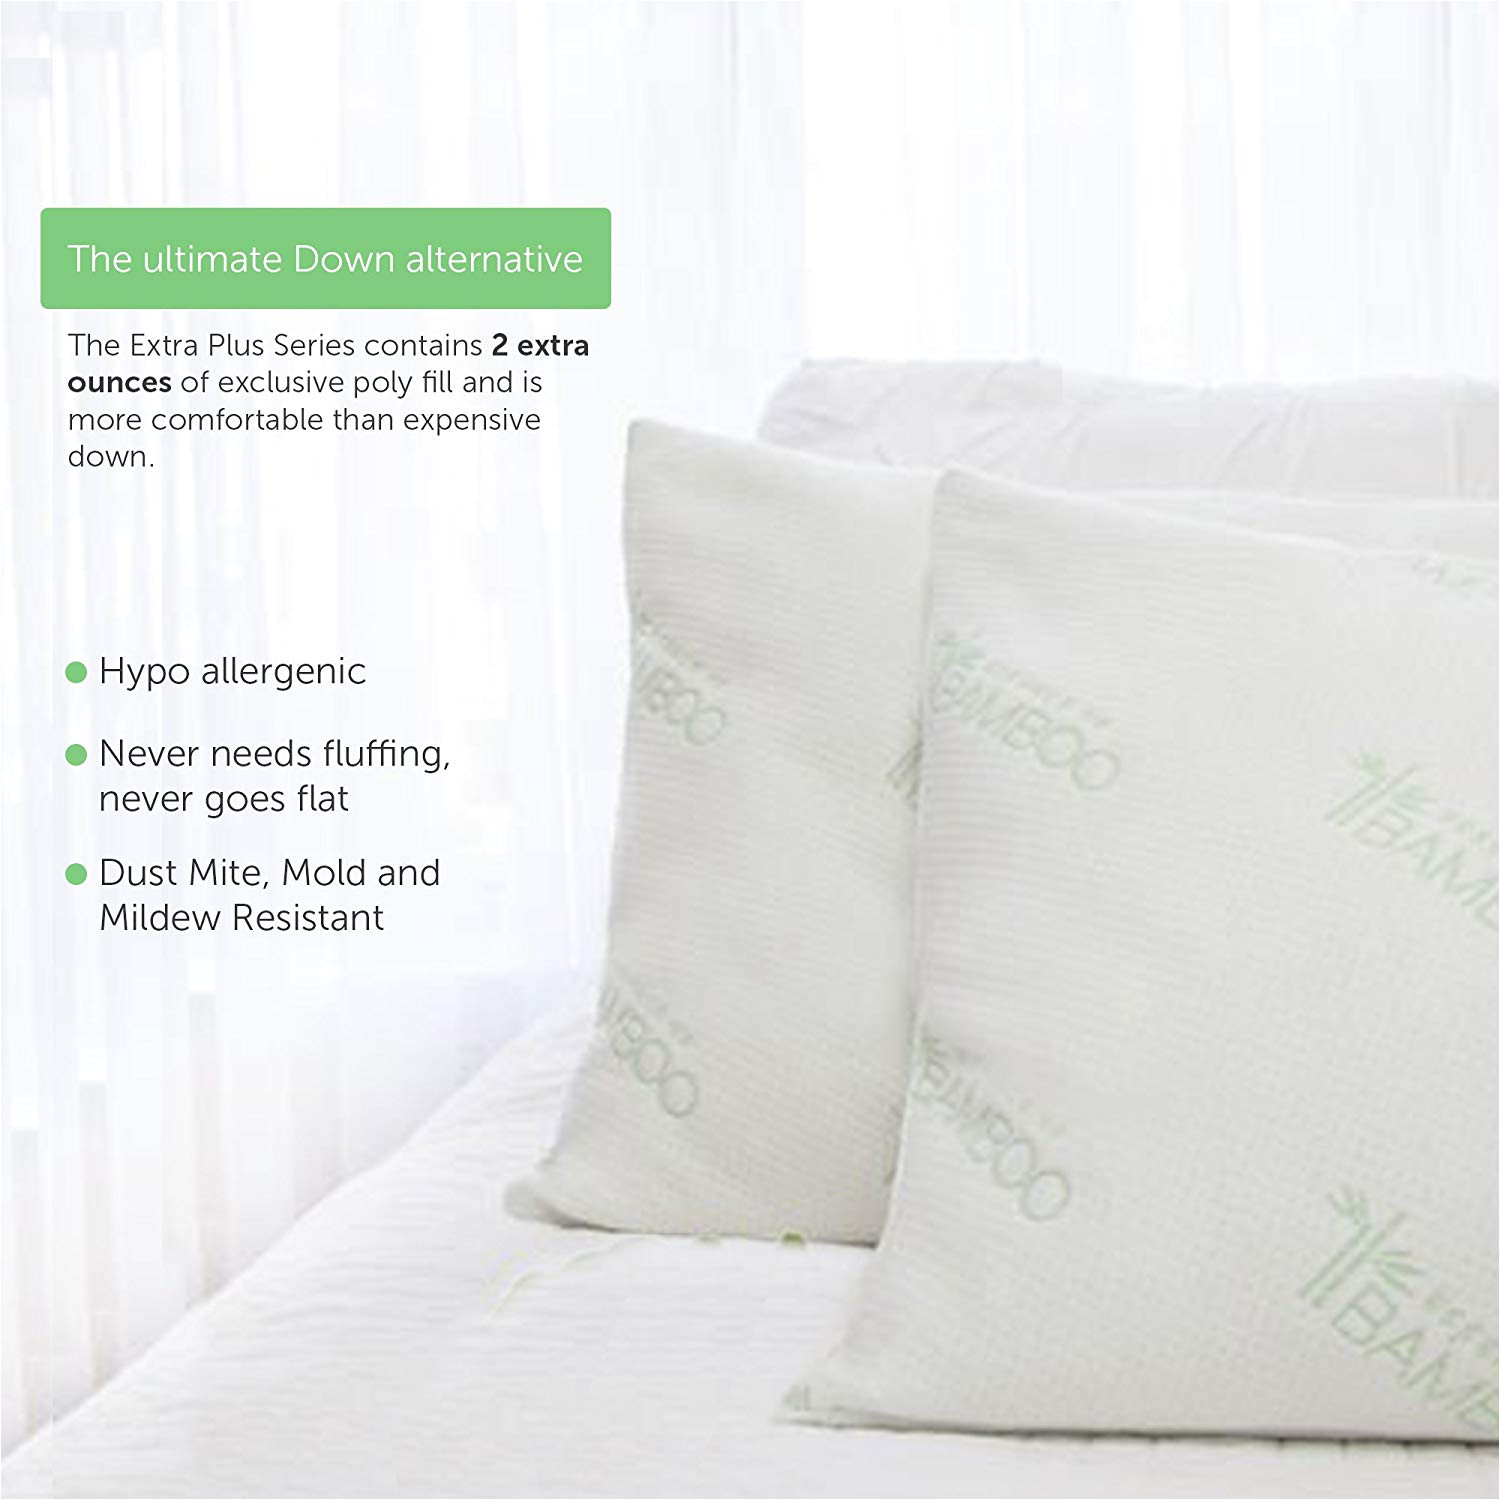 amazon com ultimate essence of bamboo derived rayon pillow extra plush edition down alternative hypoallergenic poly bed pillows with bamboo derived